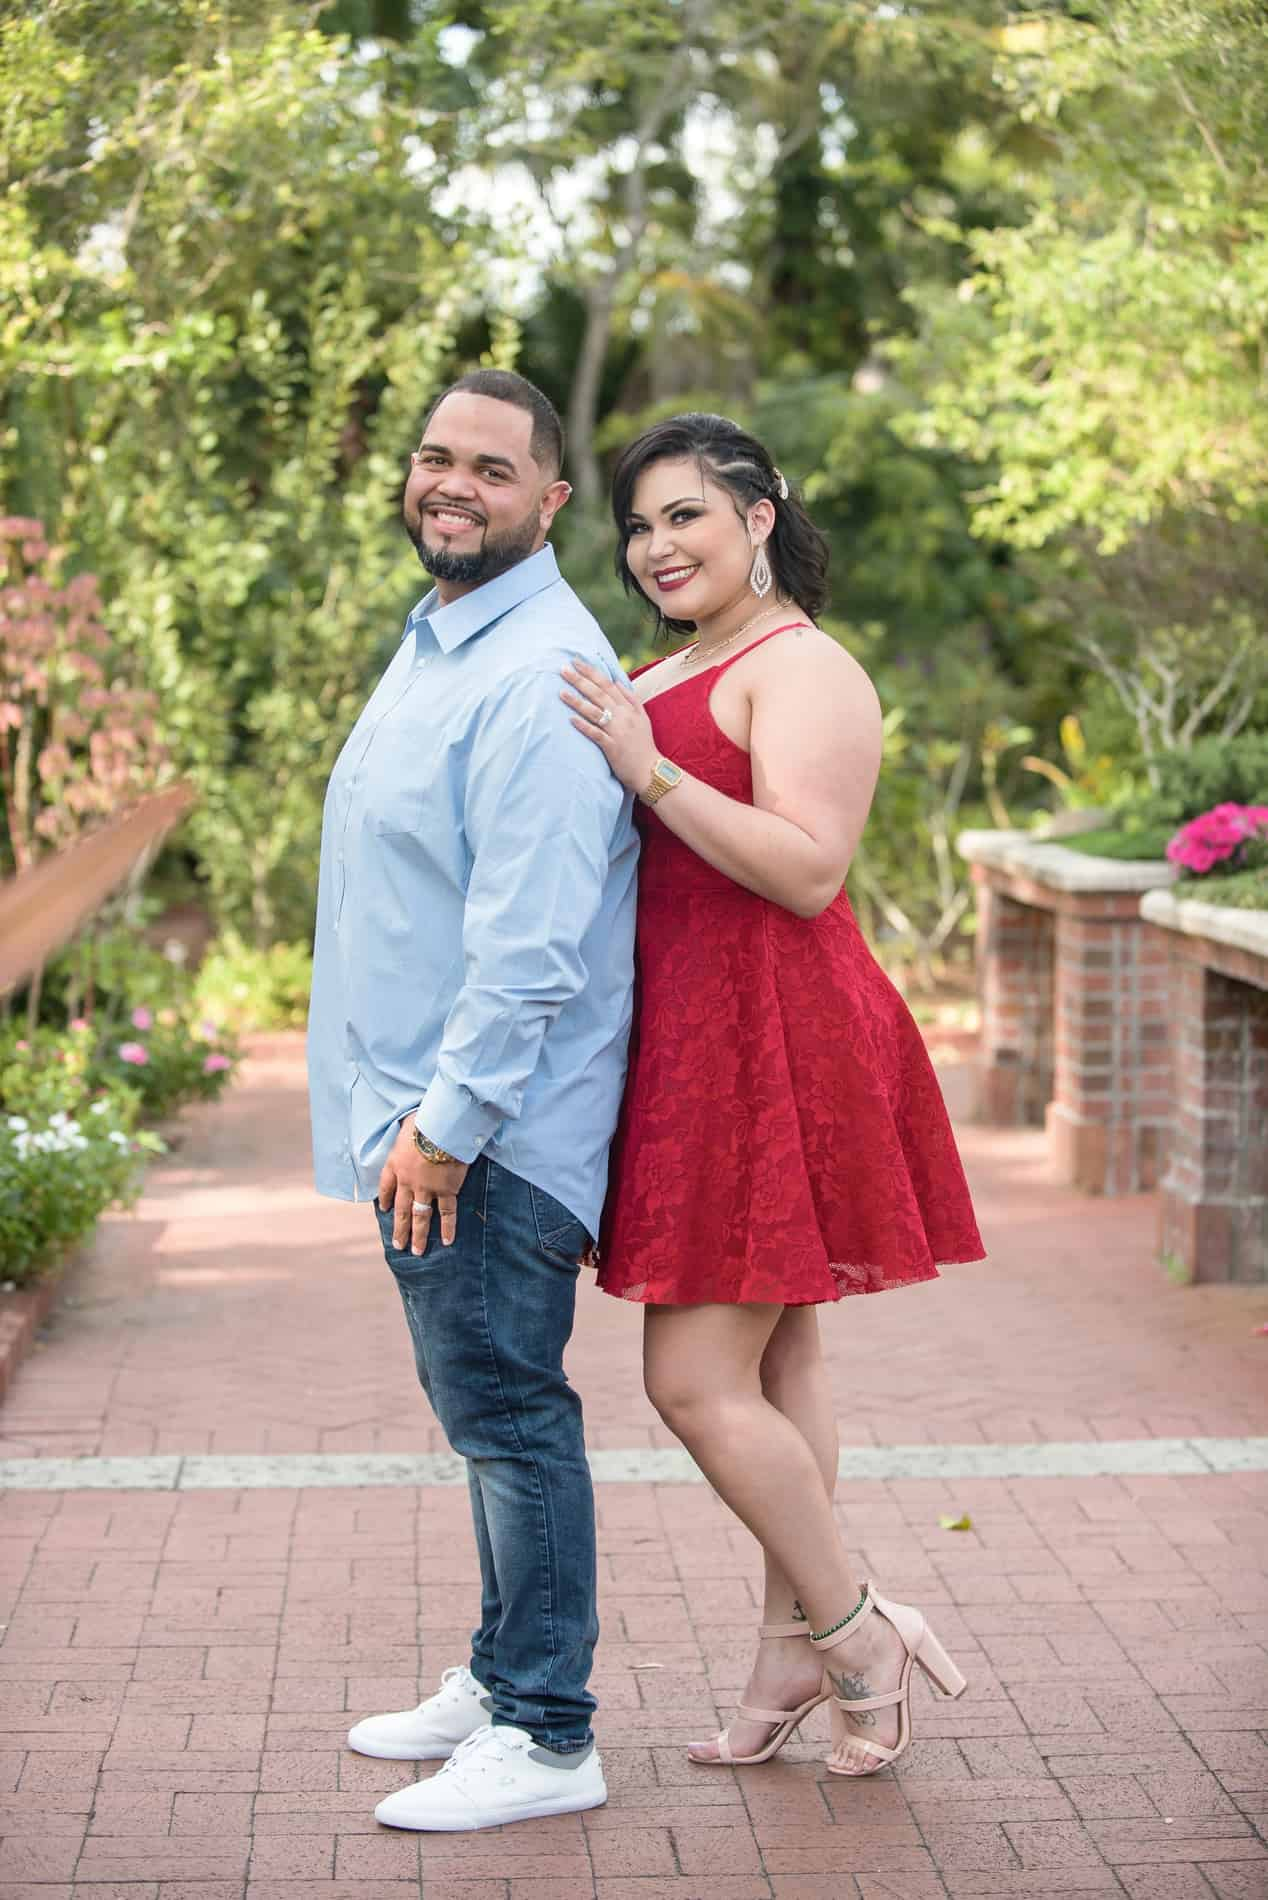 Best Photographers for Leu Gardens Engagement Photos